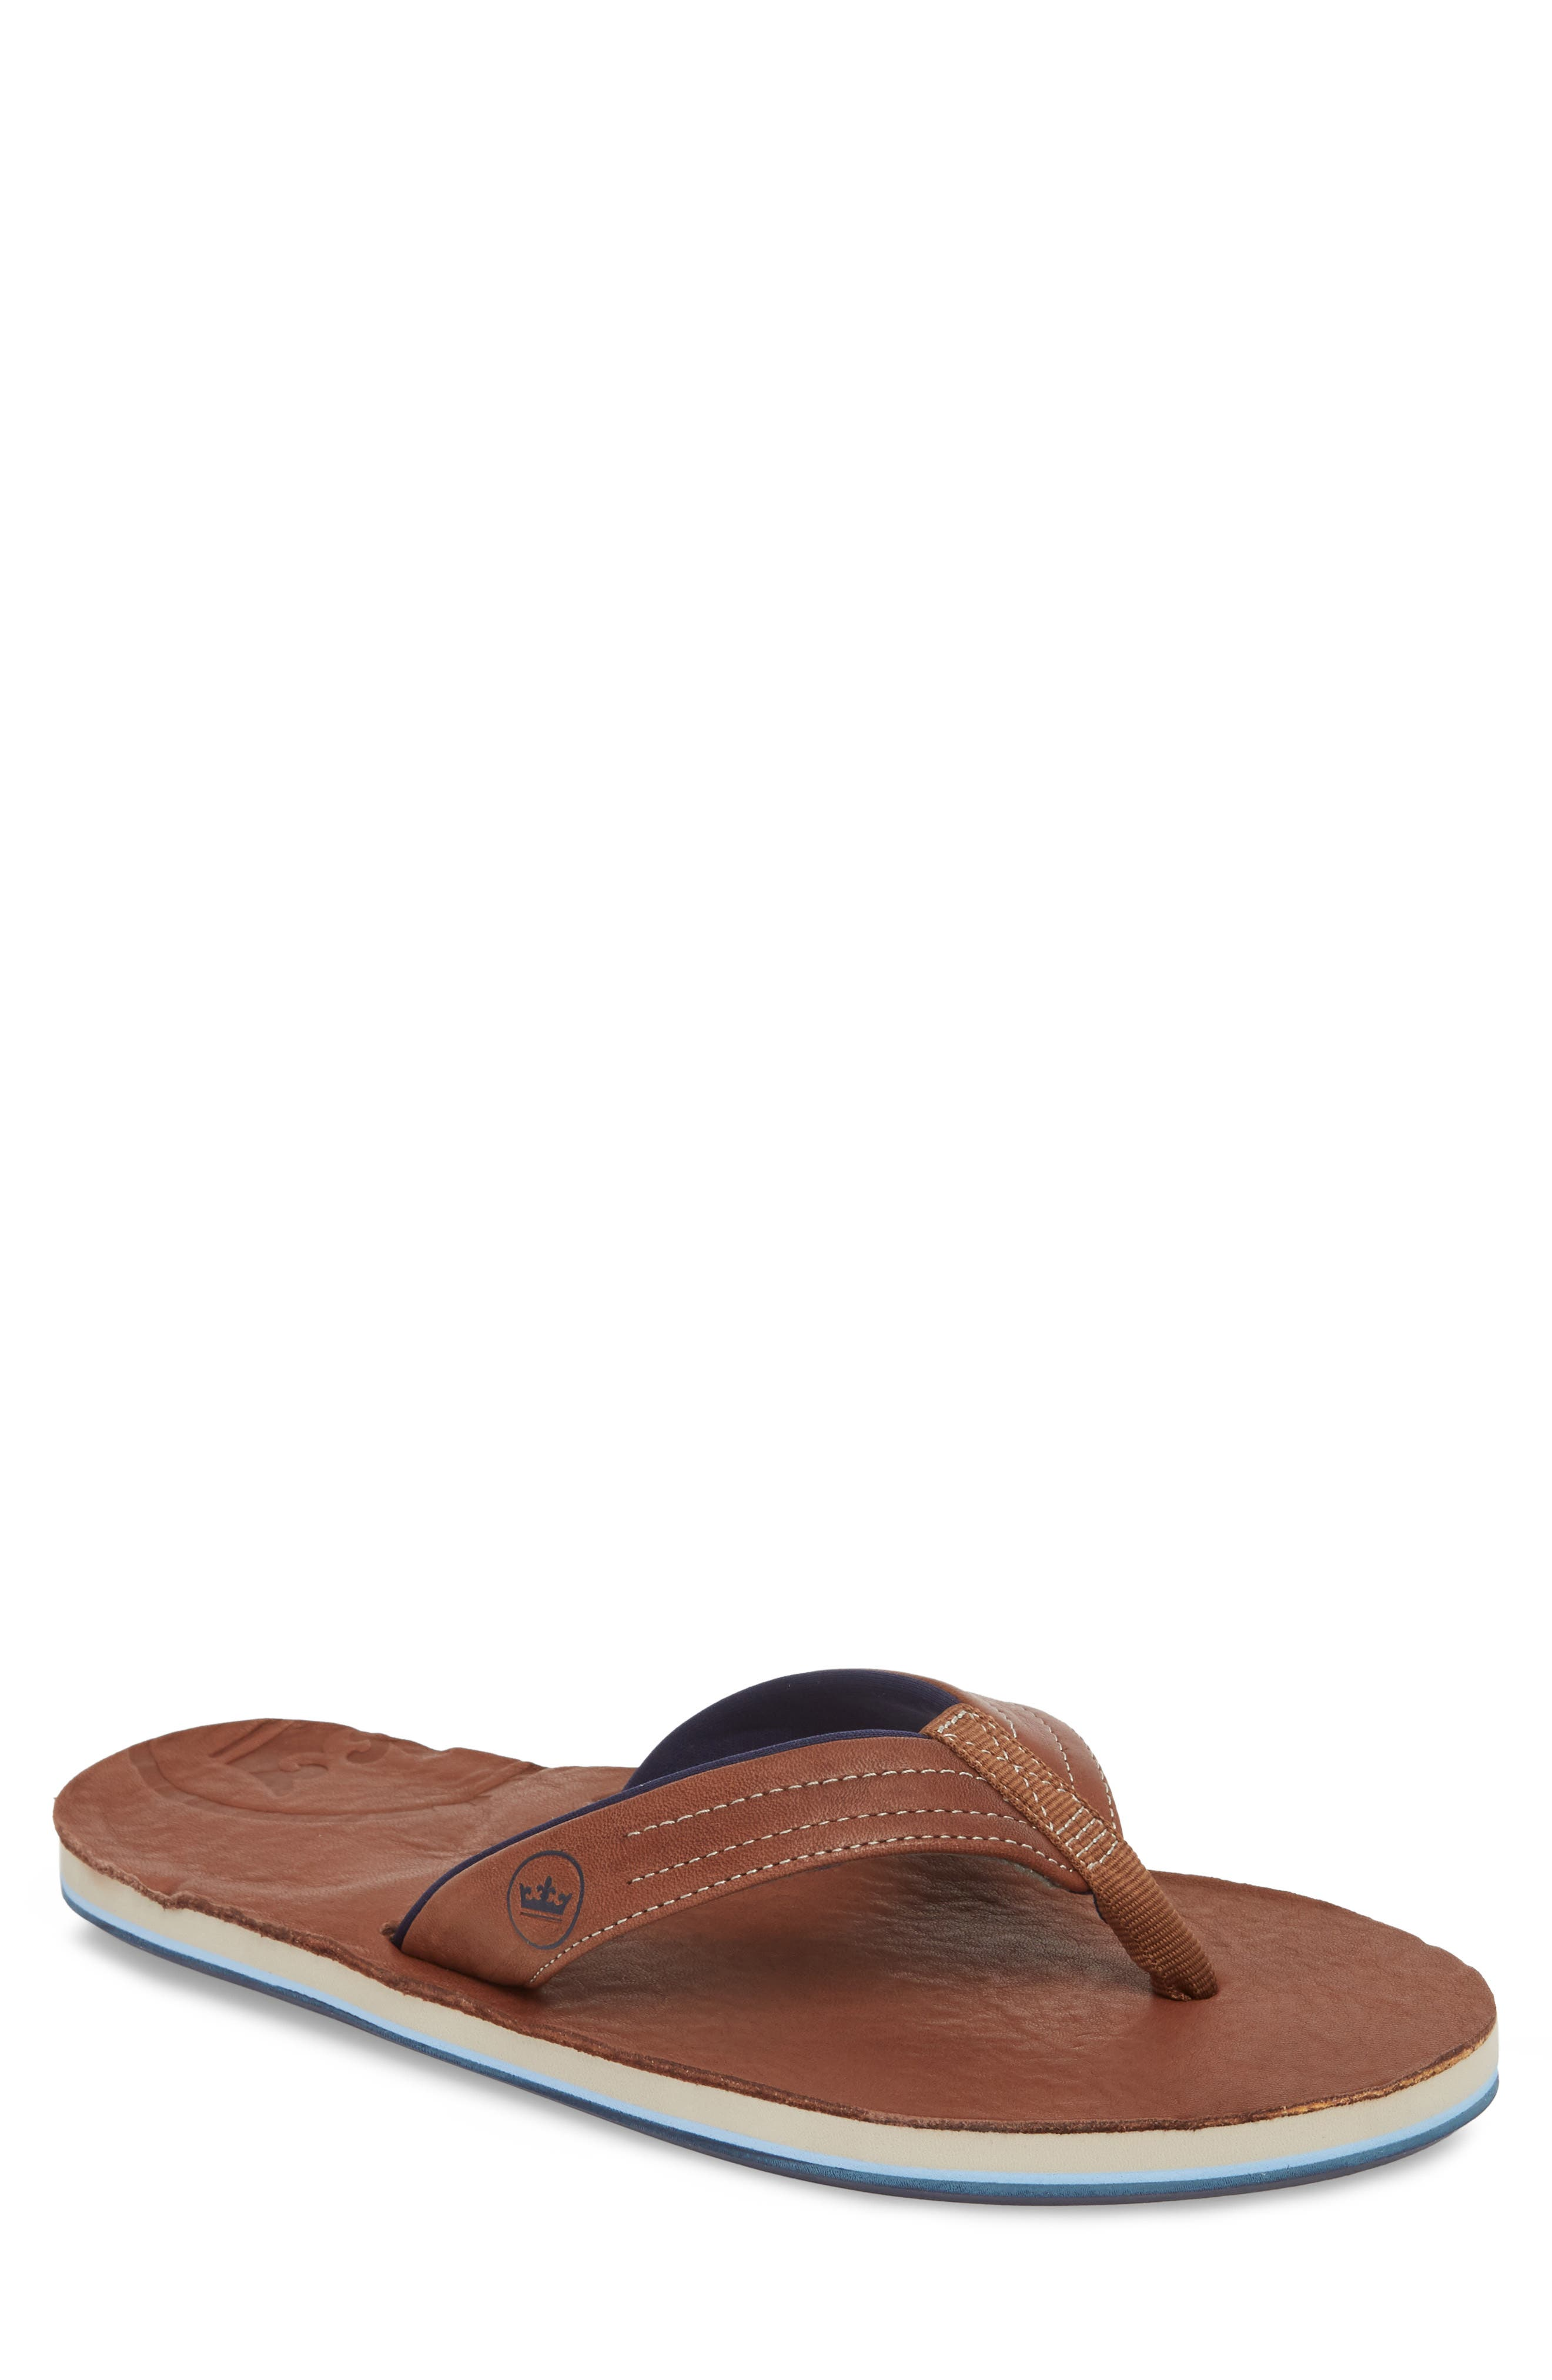 x Peter Millar Leather Flip Flop,                             Main thumbnail 1, color,                             DARK CHOCOLATE LEATHER